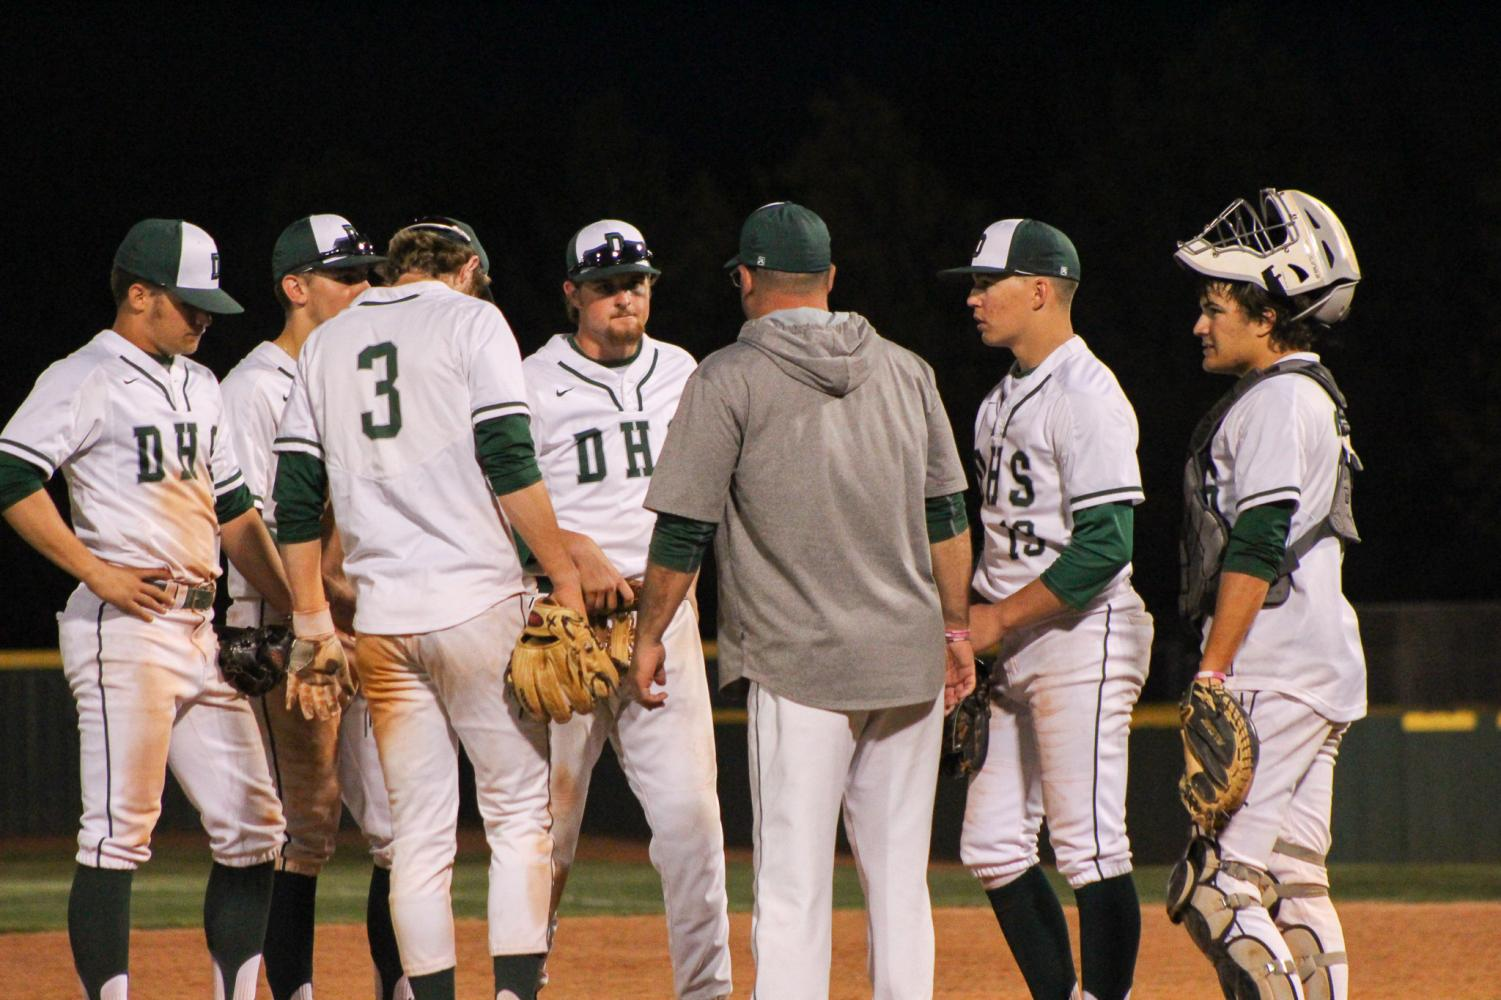 Night+time+infield+huddle